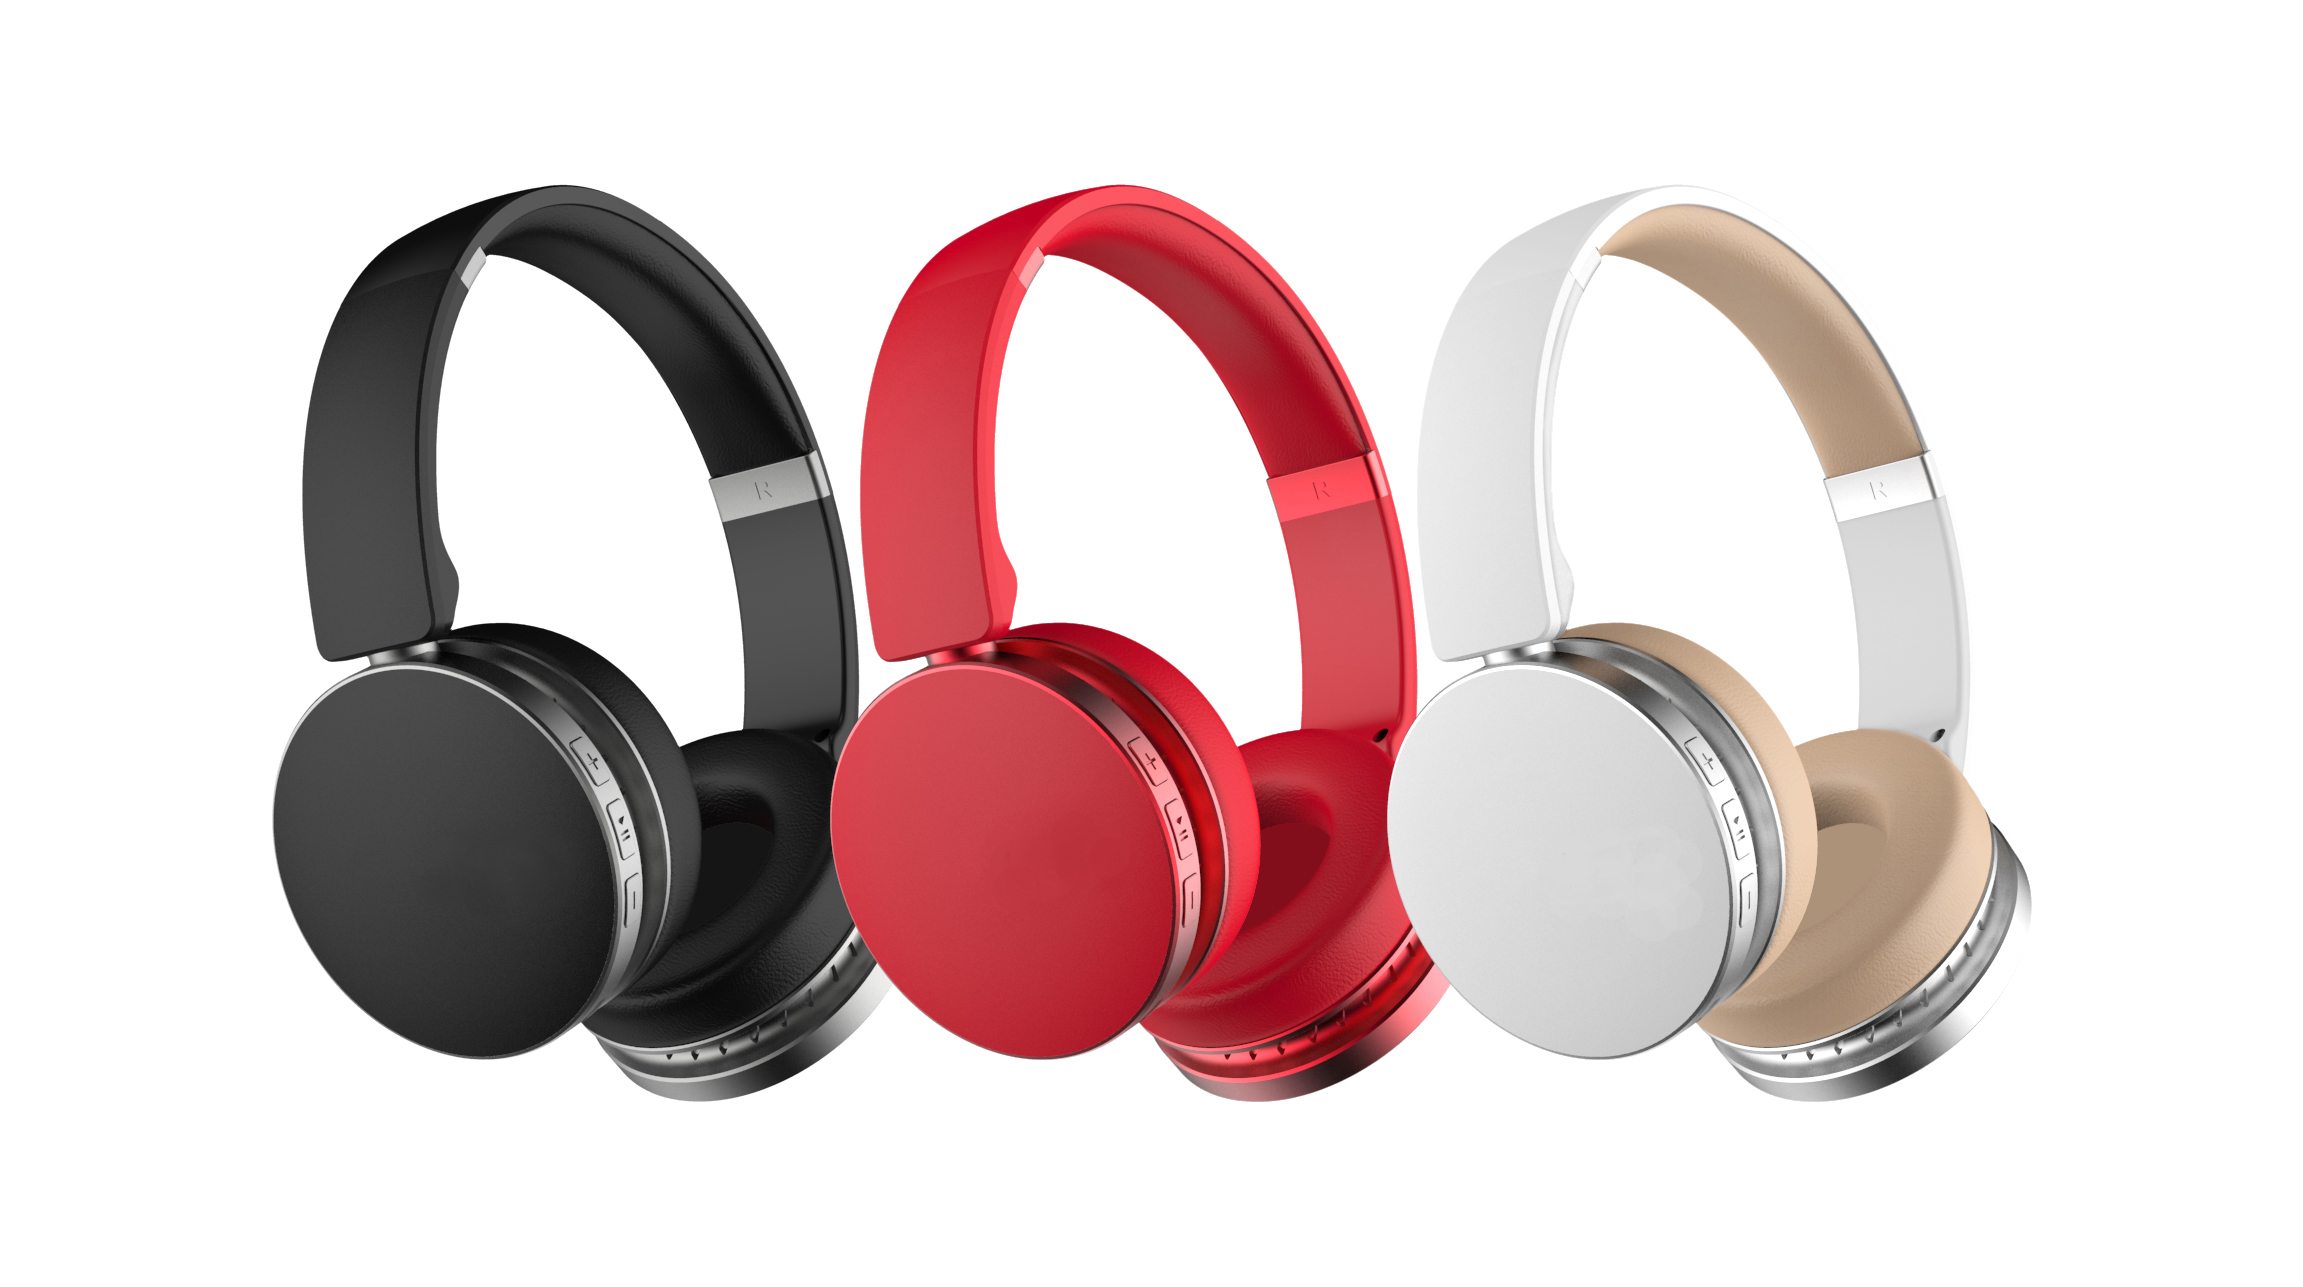 OEM-BL134 Bluetooth headphones